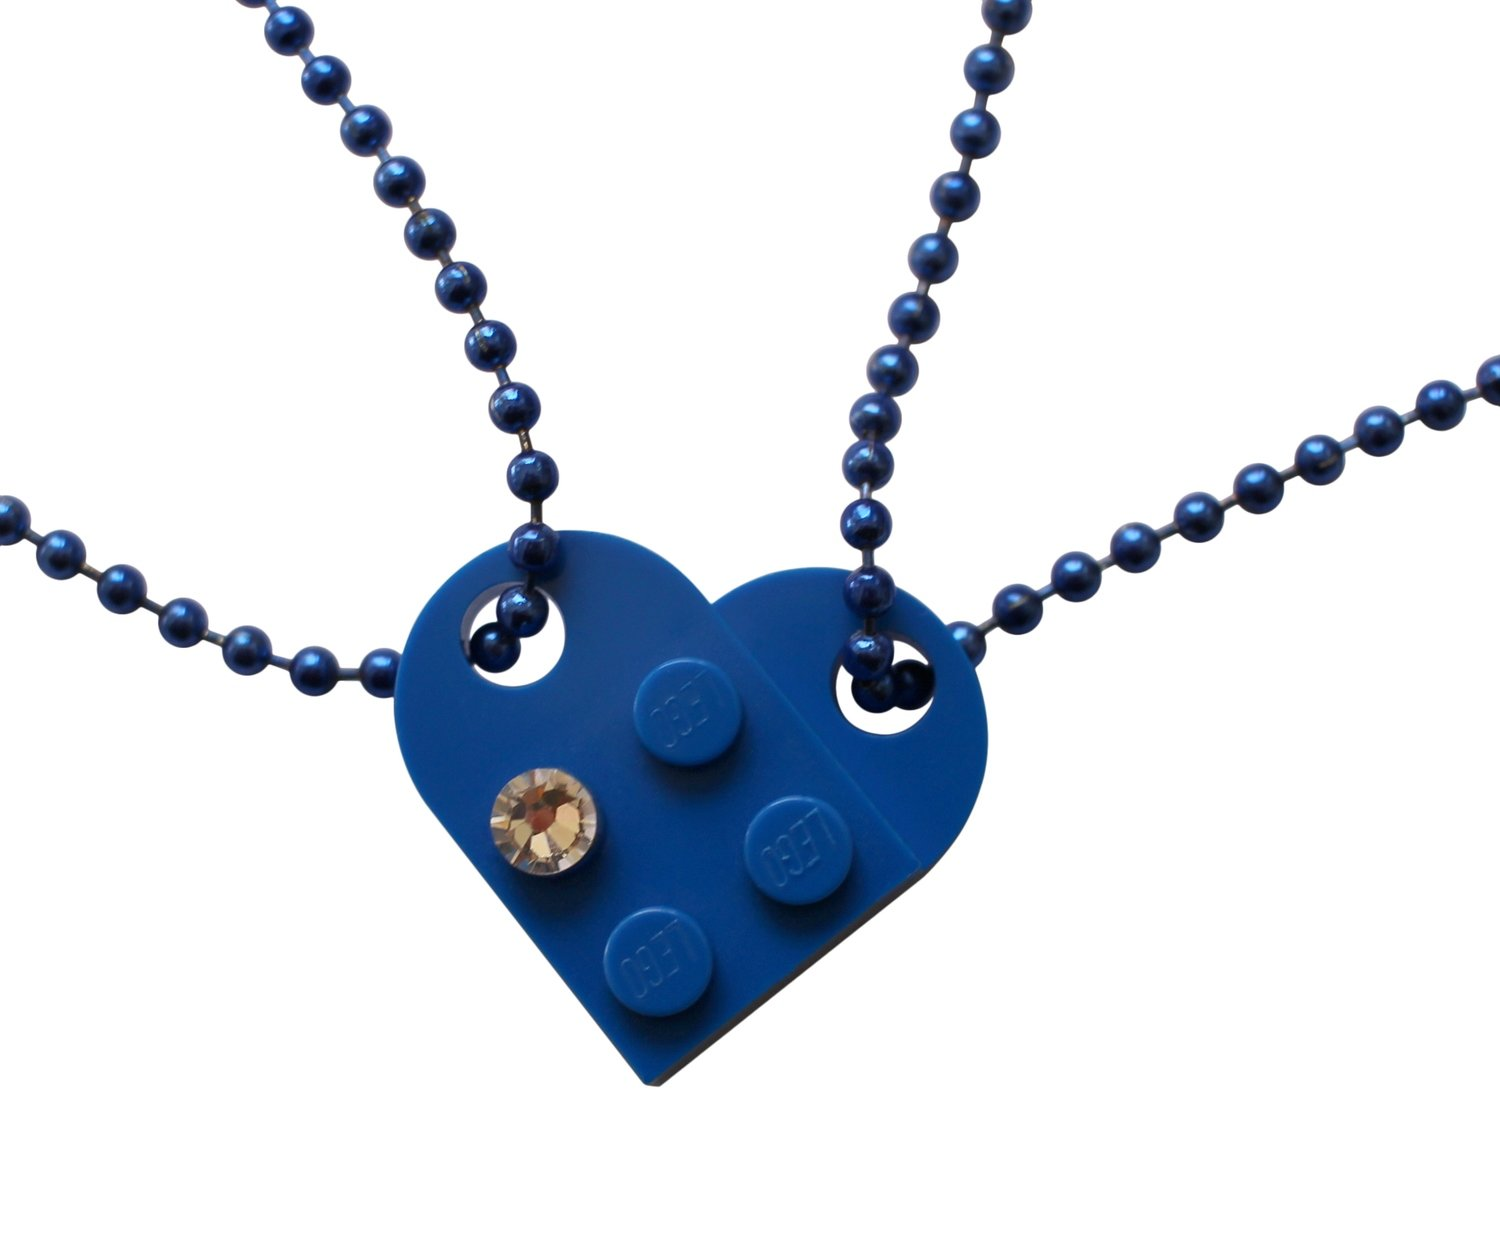 Dark Blue 2 piece customizable LEGO® heart made from 2 LEGO® plates with a 'Diamond' color SWAROVSKI® crystal on 2 Blue ballchains